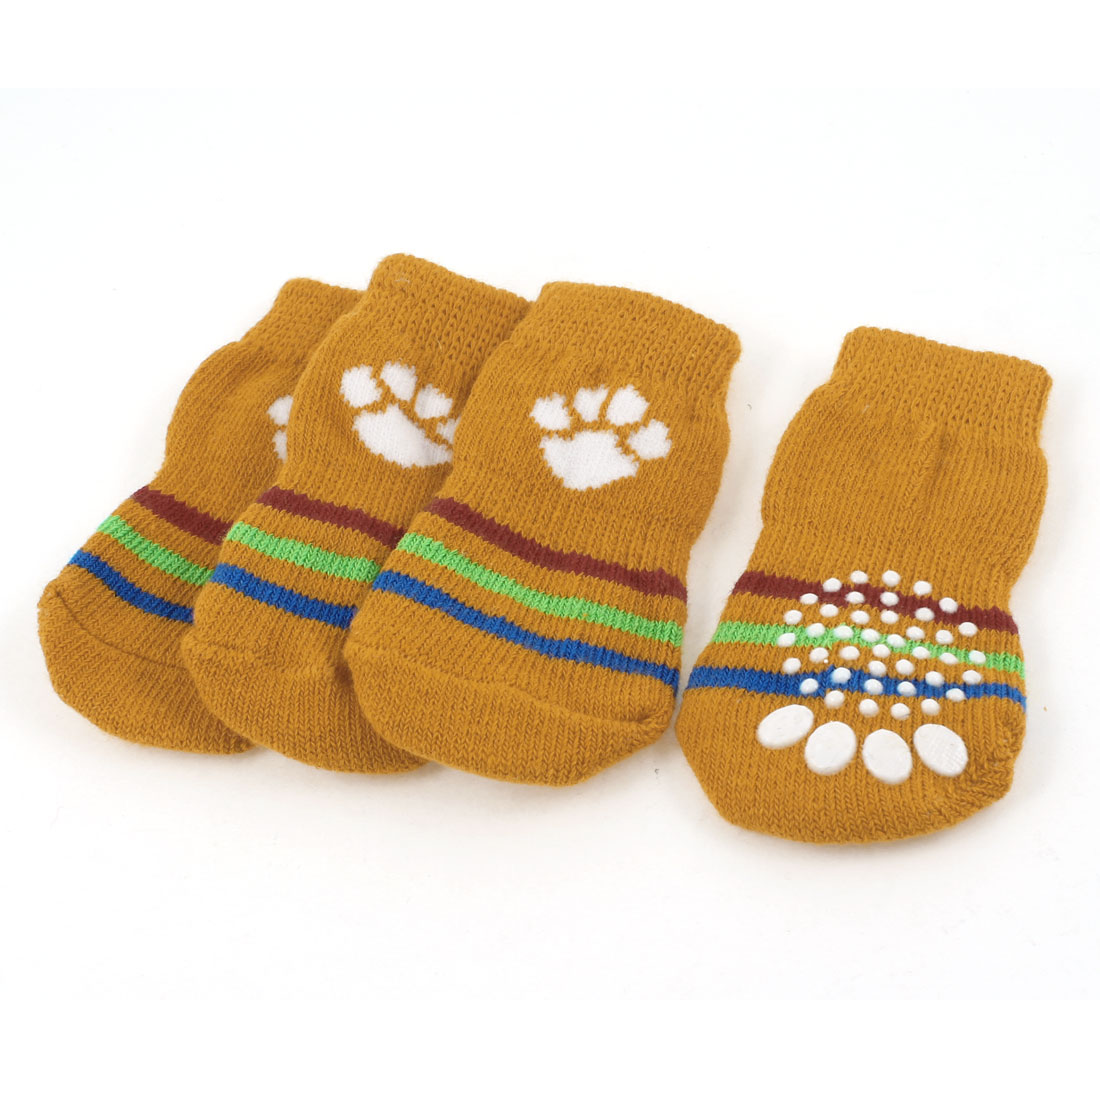 2 Pairs Stripes Print Ribbed Hem Knitted Winter Socks Orange for Doggie